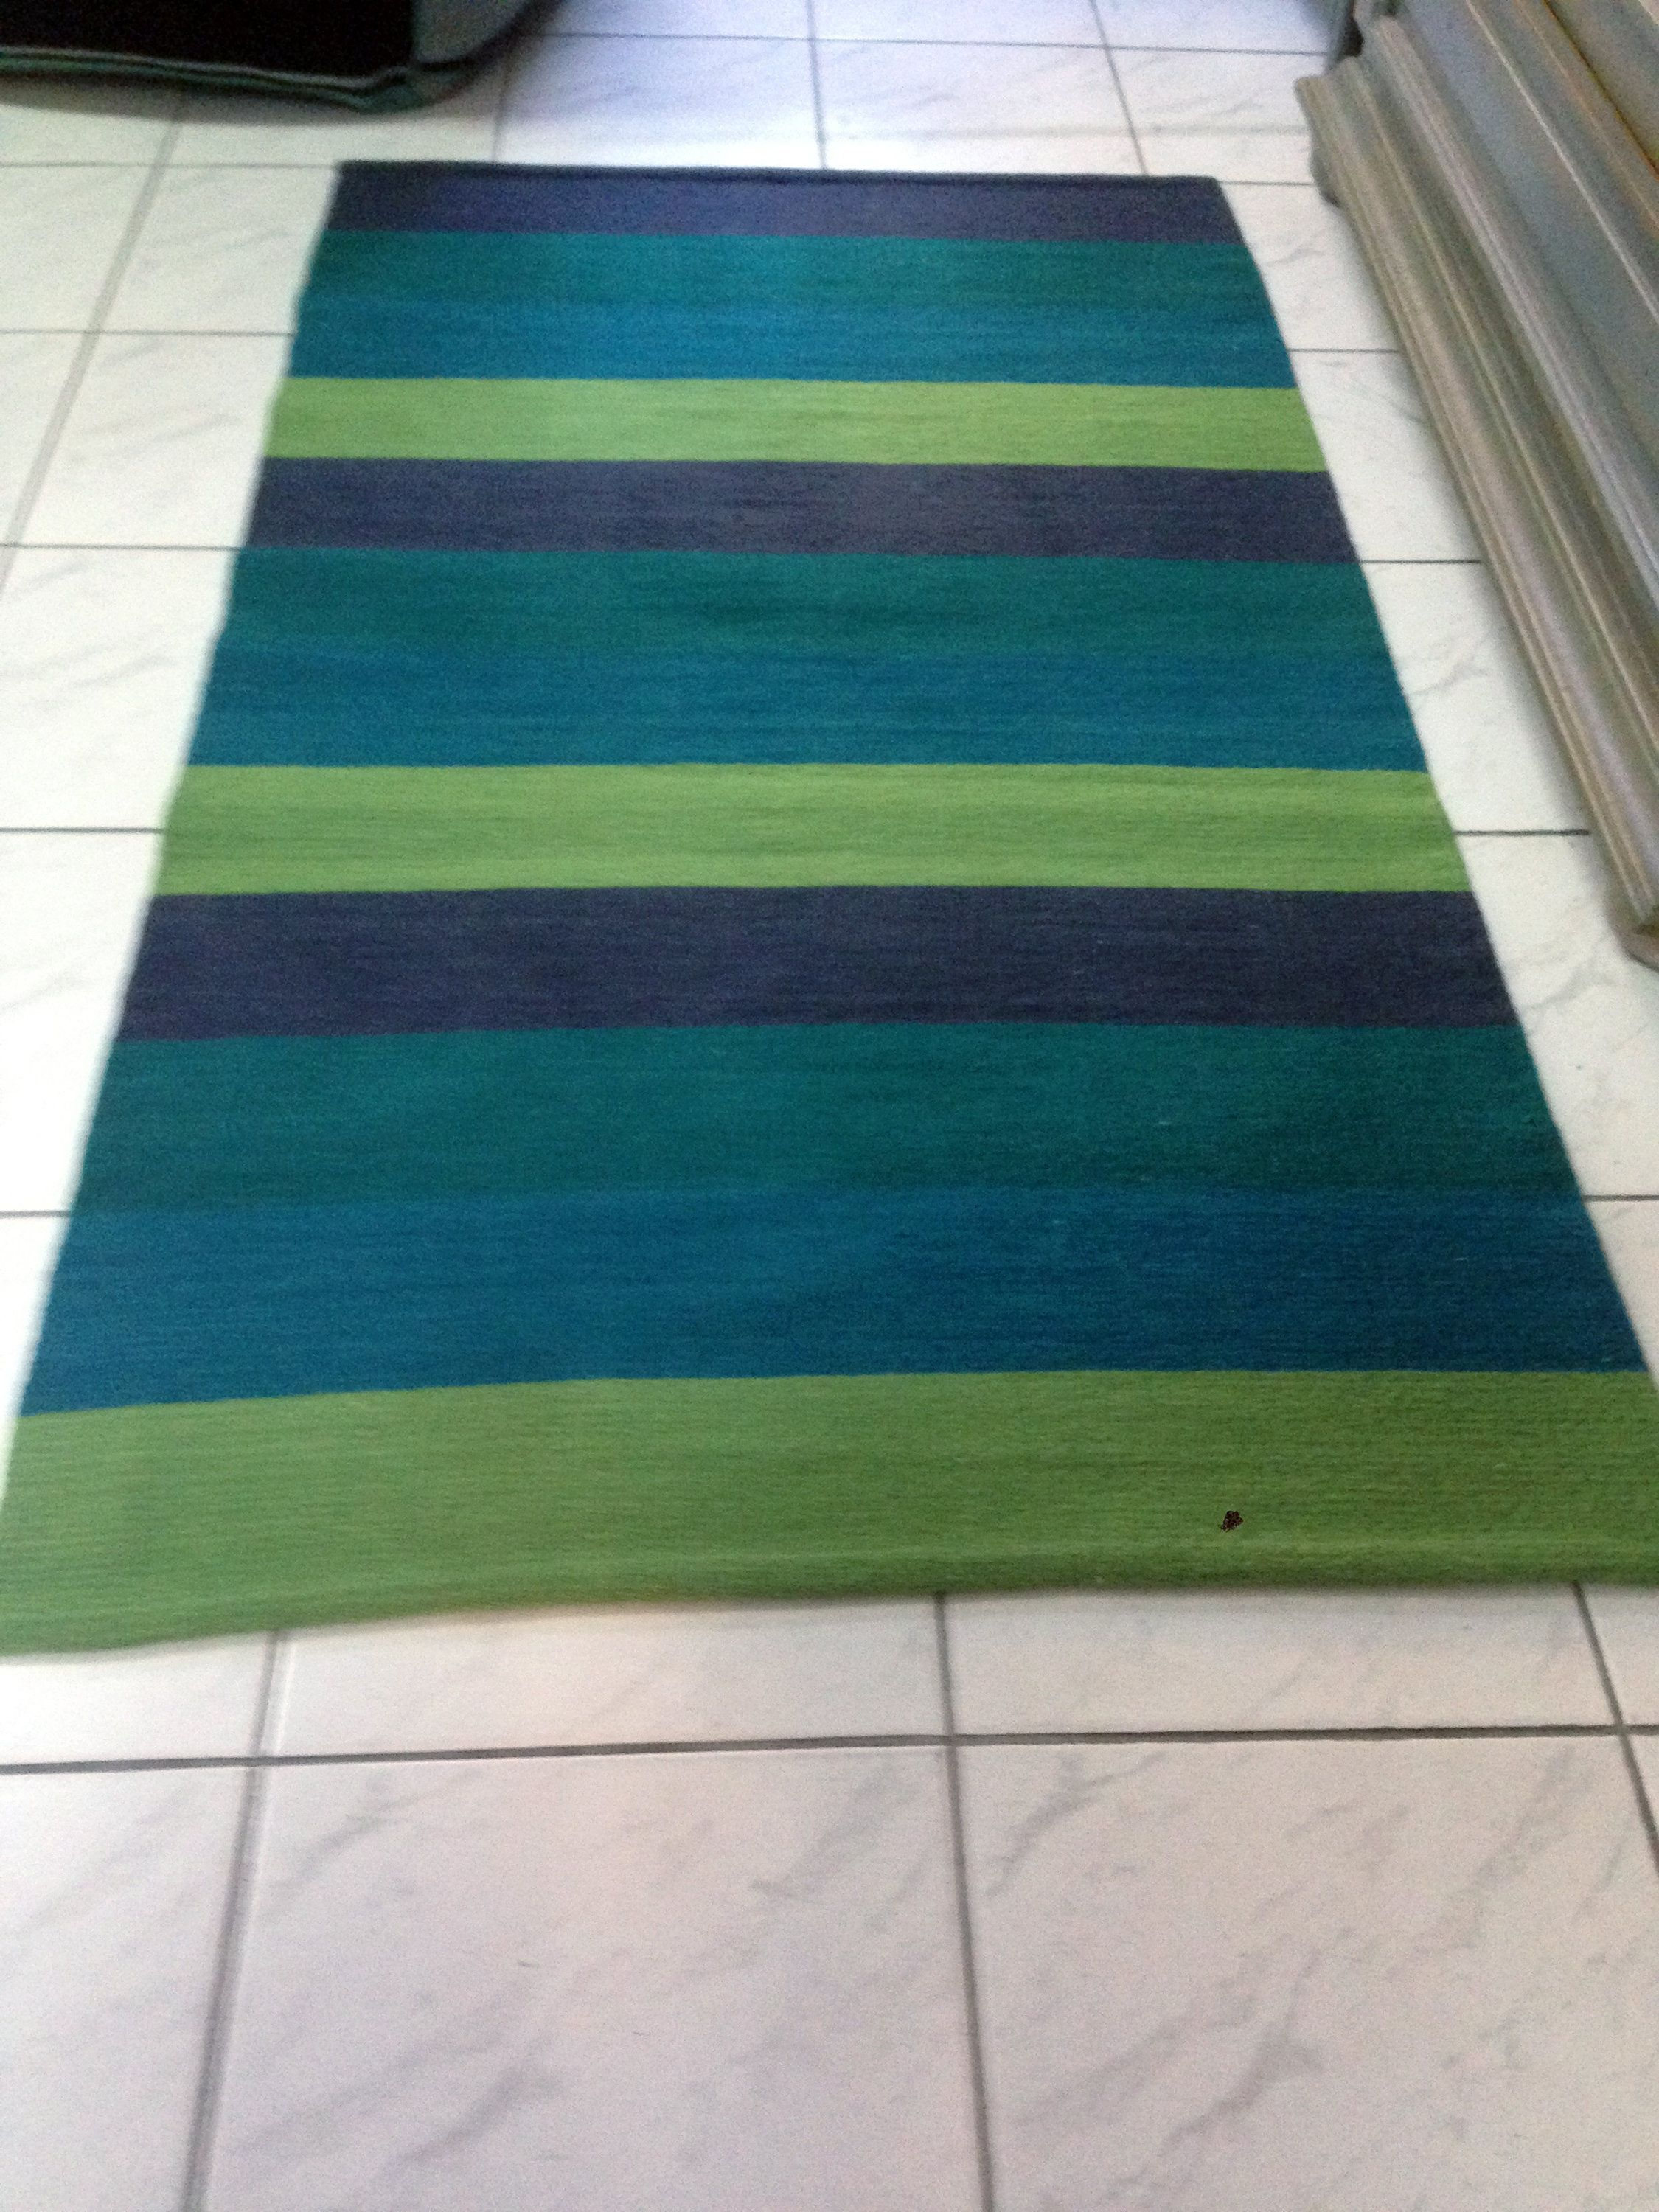 Handmade Wool Rug In Green And Blue Rainforest Handwoven Runner Striped Area Floor Made To Order Rugs By Dzevstudio On Etsy